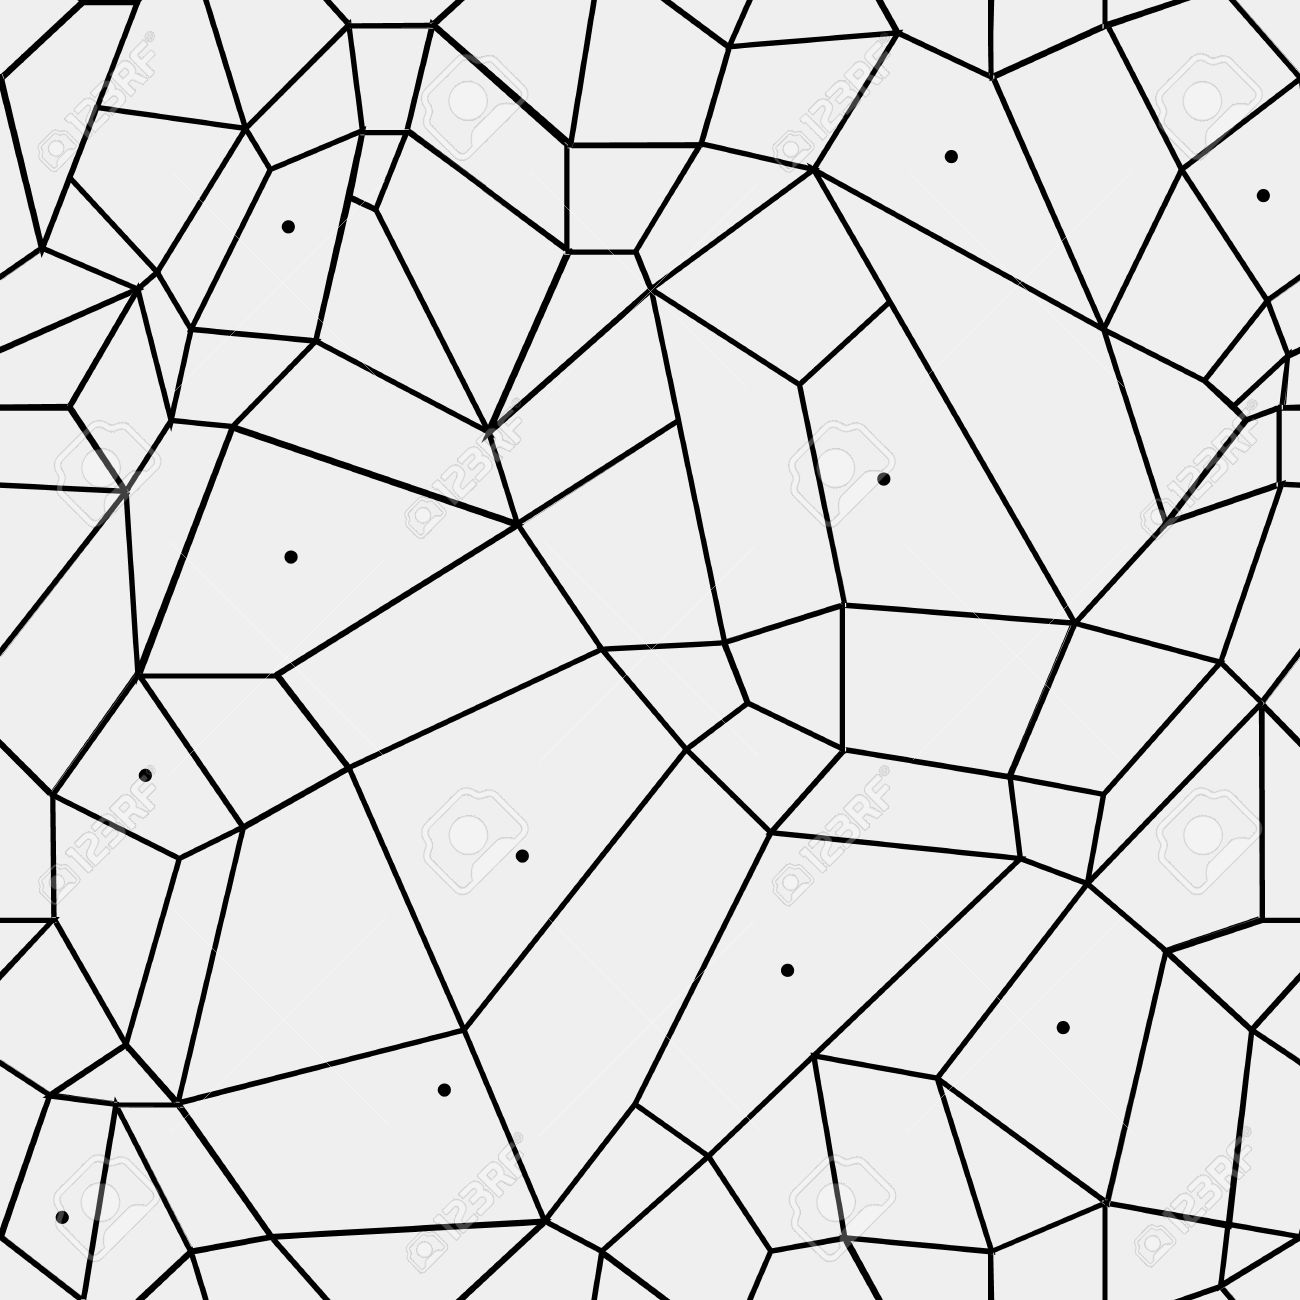 Geometric Simple Black And White Minimalistic Pattern, Rectangles ... for Window Clipart Black And White  111ane